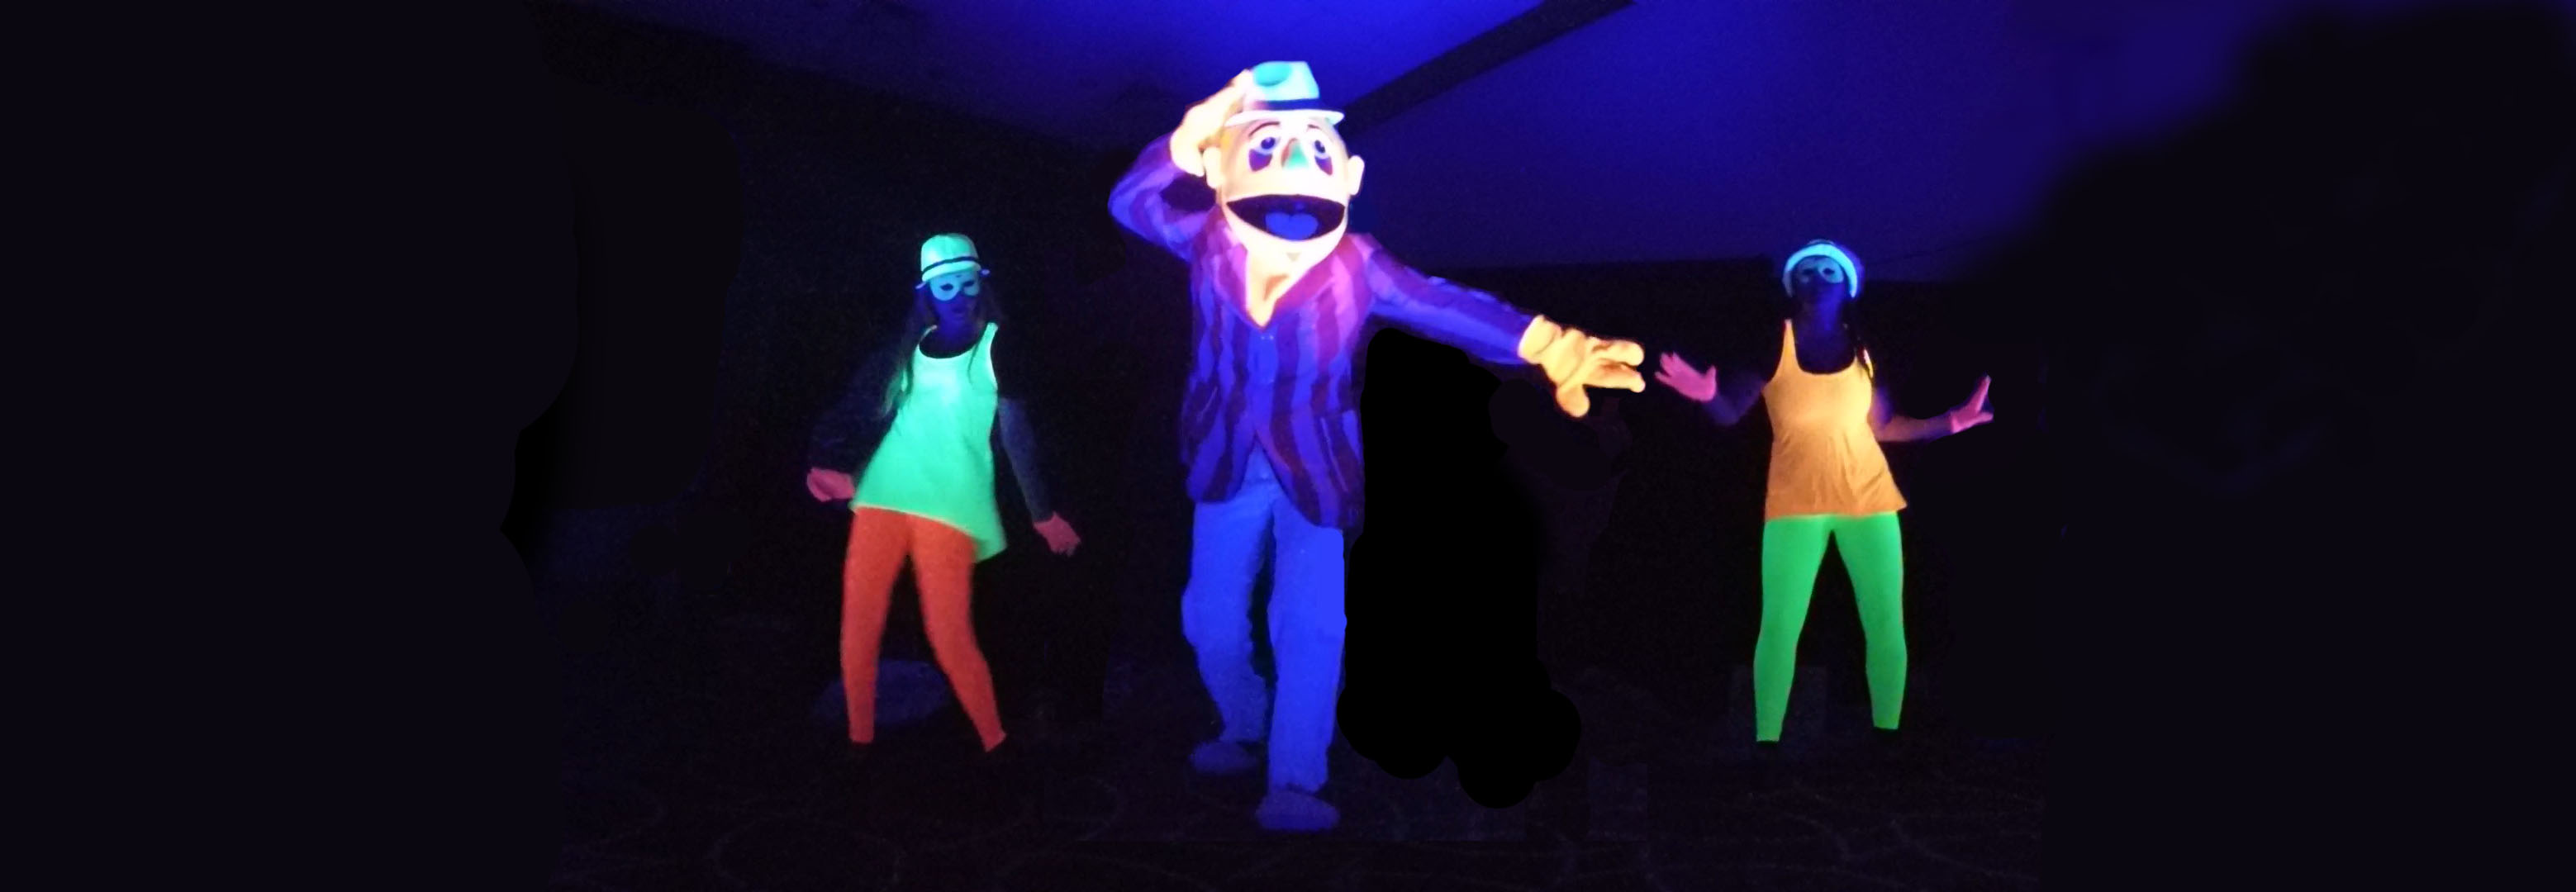 Blacklight Puppets